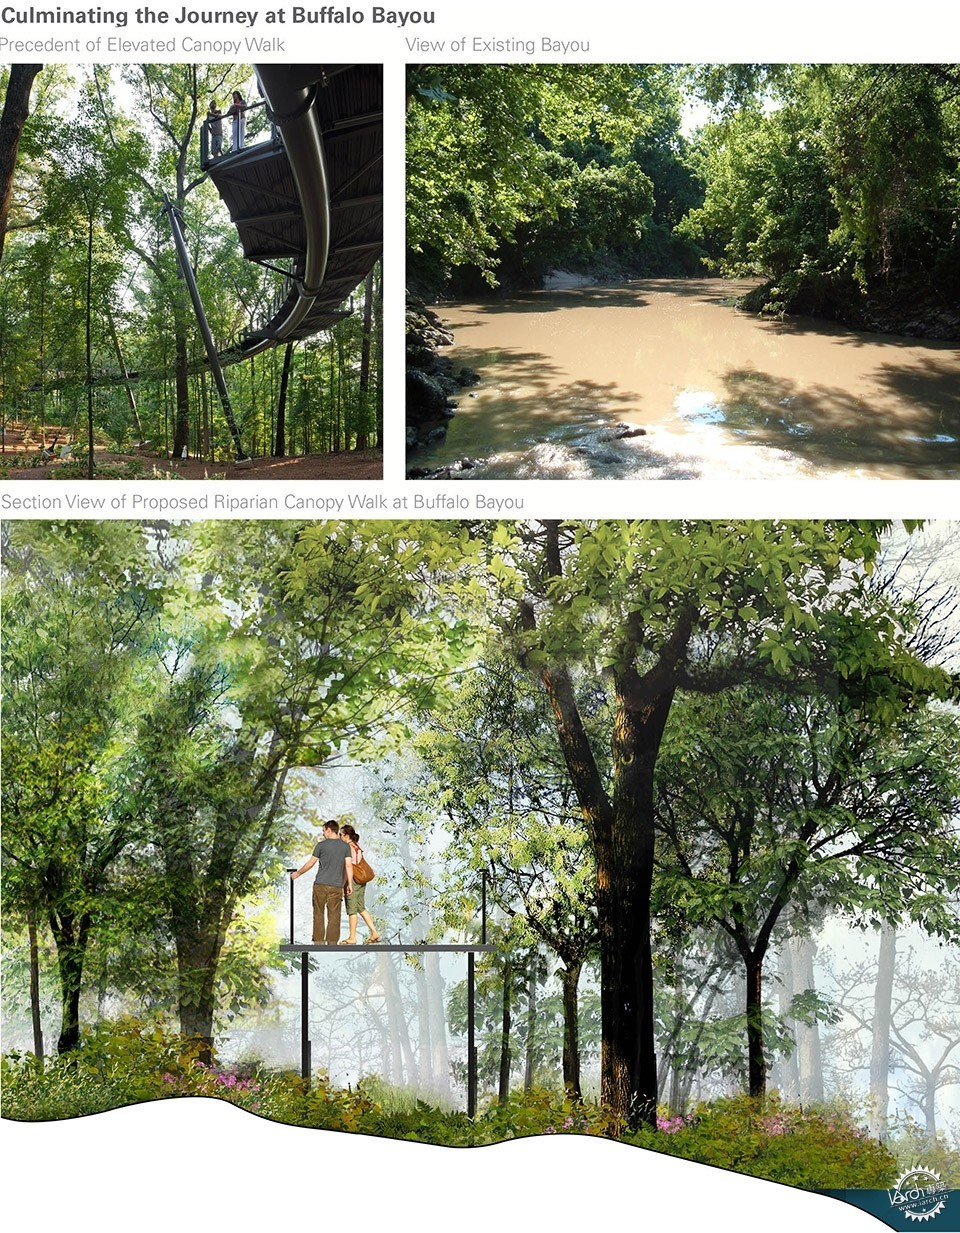 Devastation to Resilience: The Houston Arboretum & Nature Center第14张图片